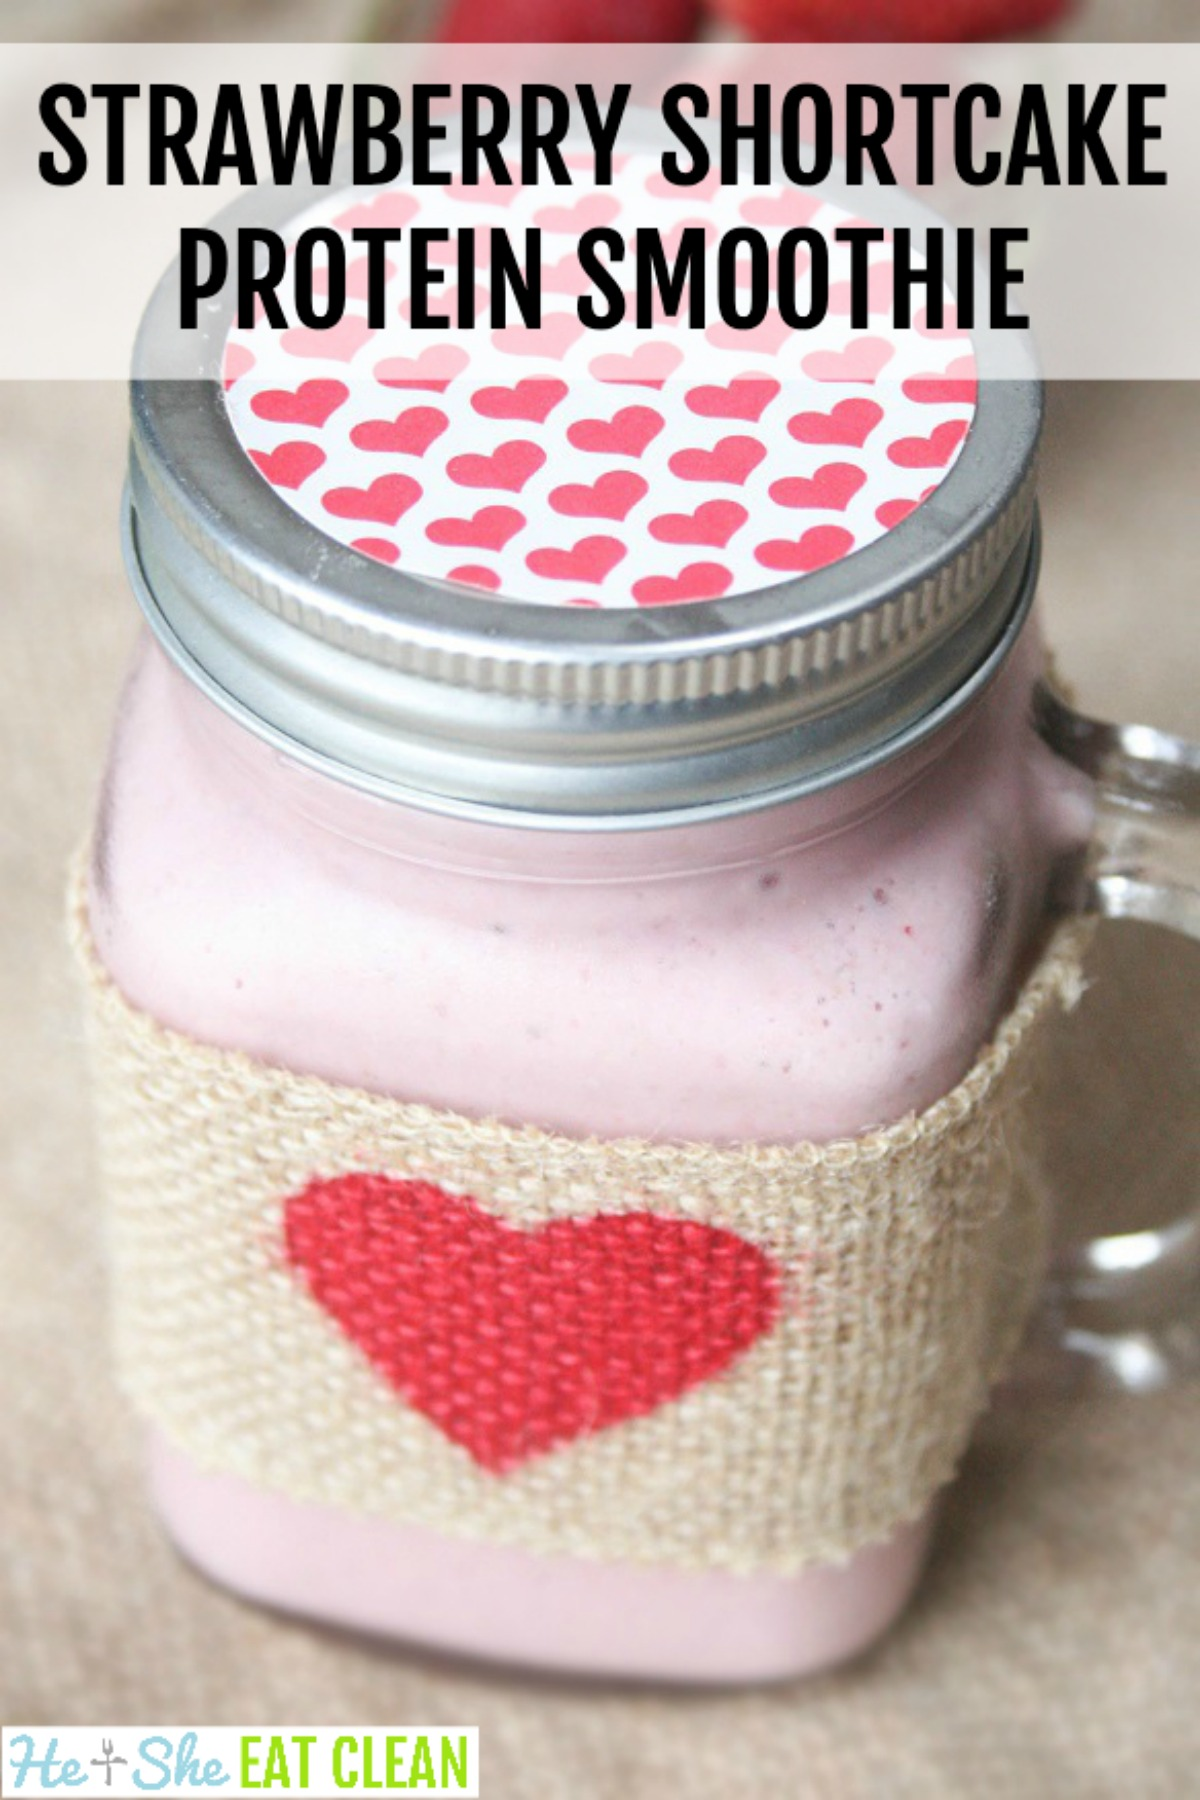 mason jar with lid filled with a pink protein shake - flavor is Strawberry Shortcake